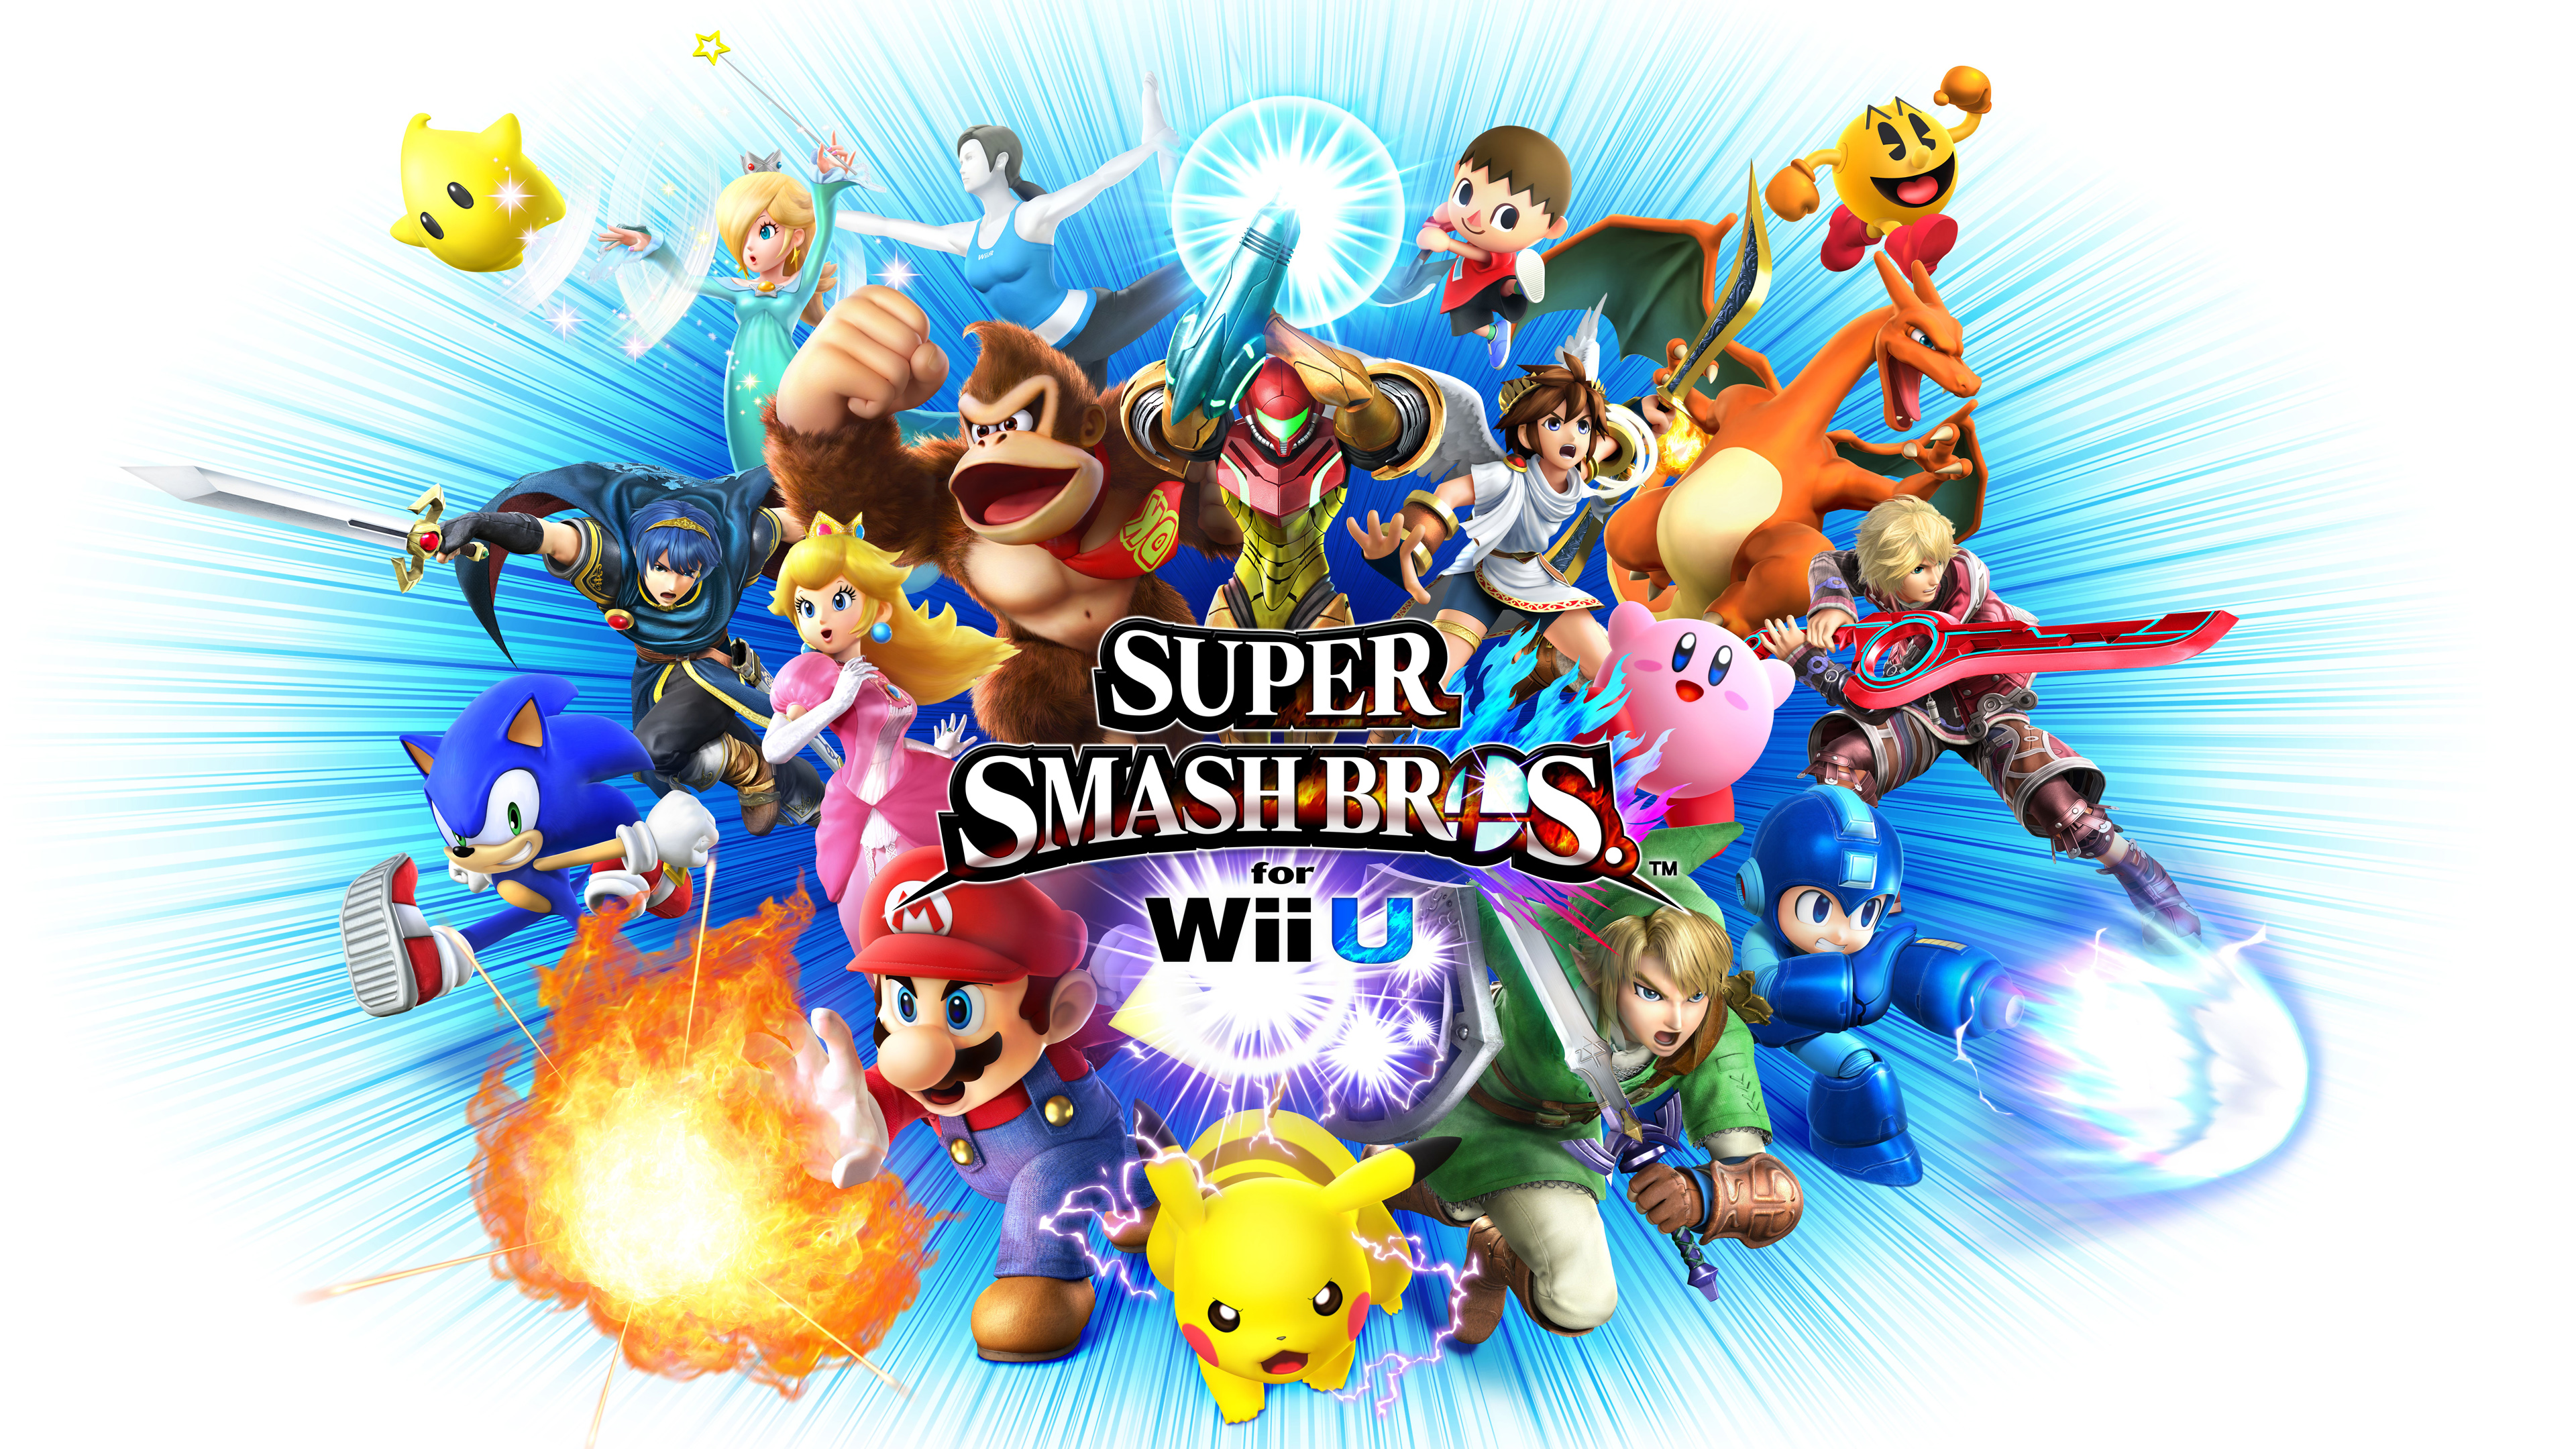 Smash 4k Wallpapers For Your Desktop Or Mobile Screen Free And